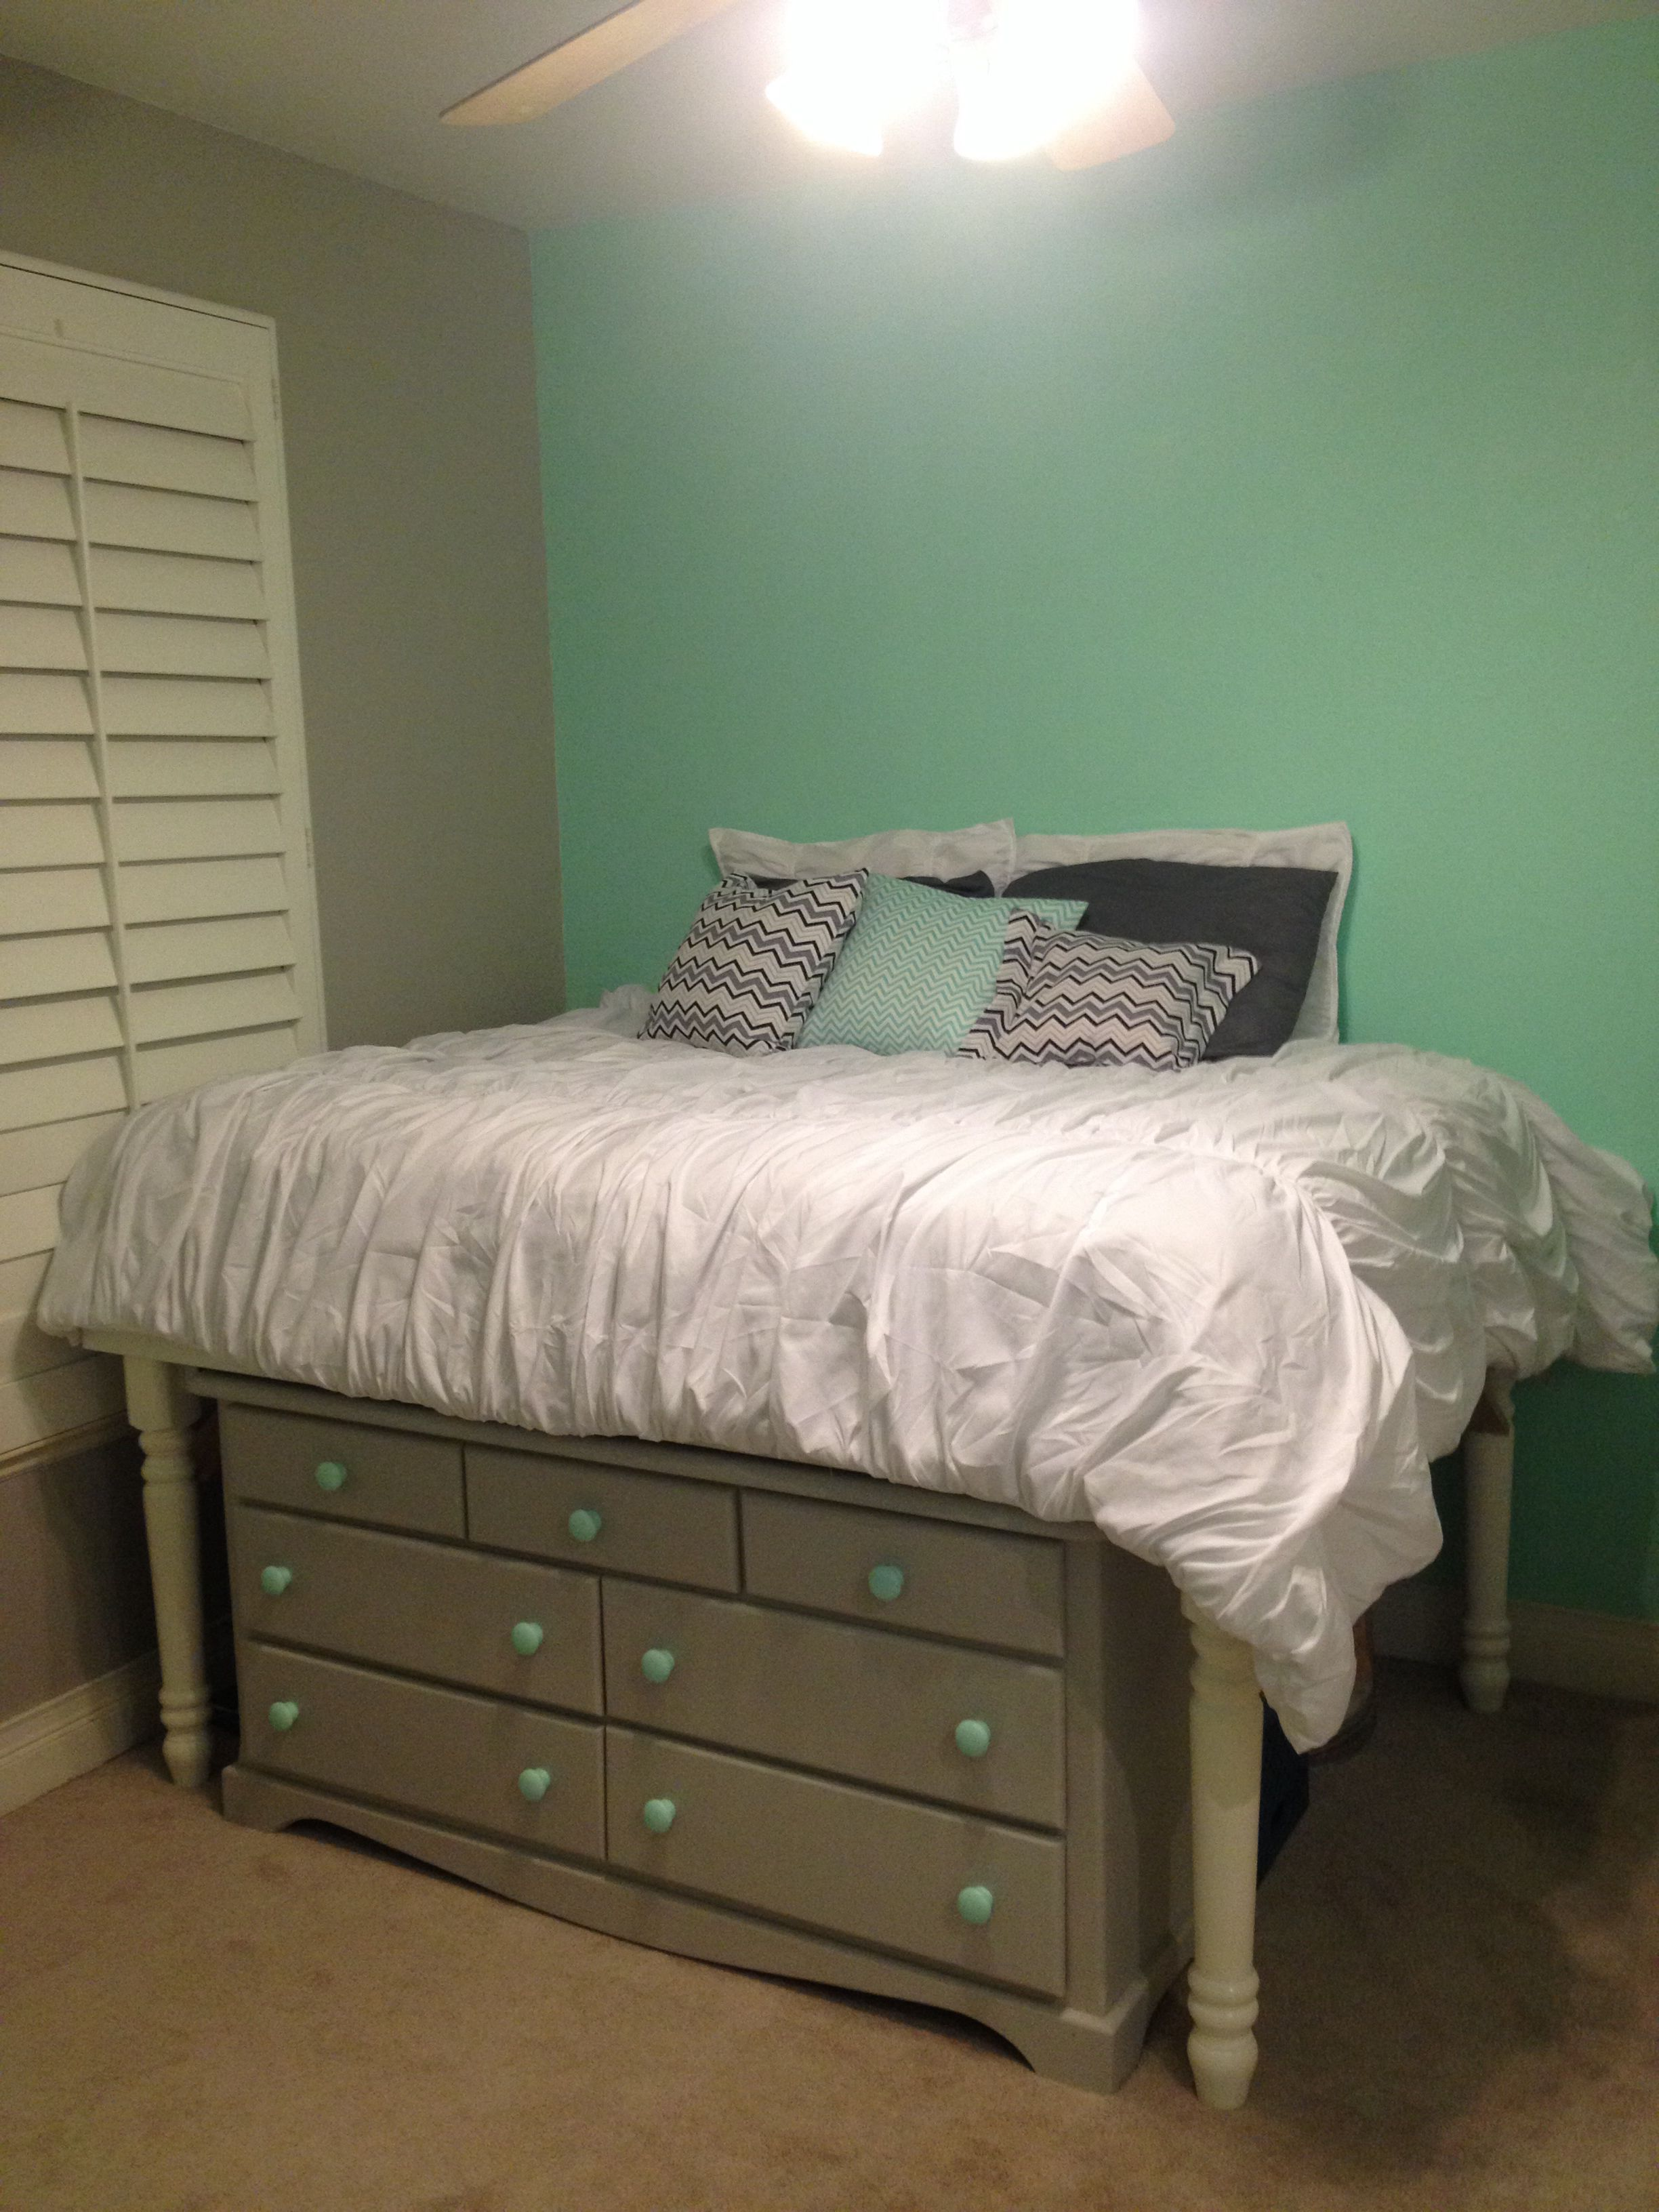 Diy Bedroom To Give You E Put The Dresser Under Your Bed